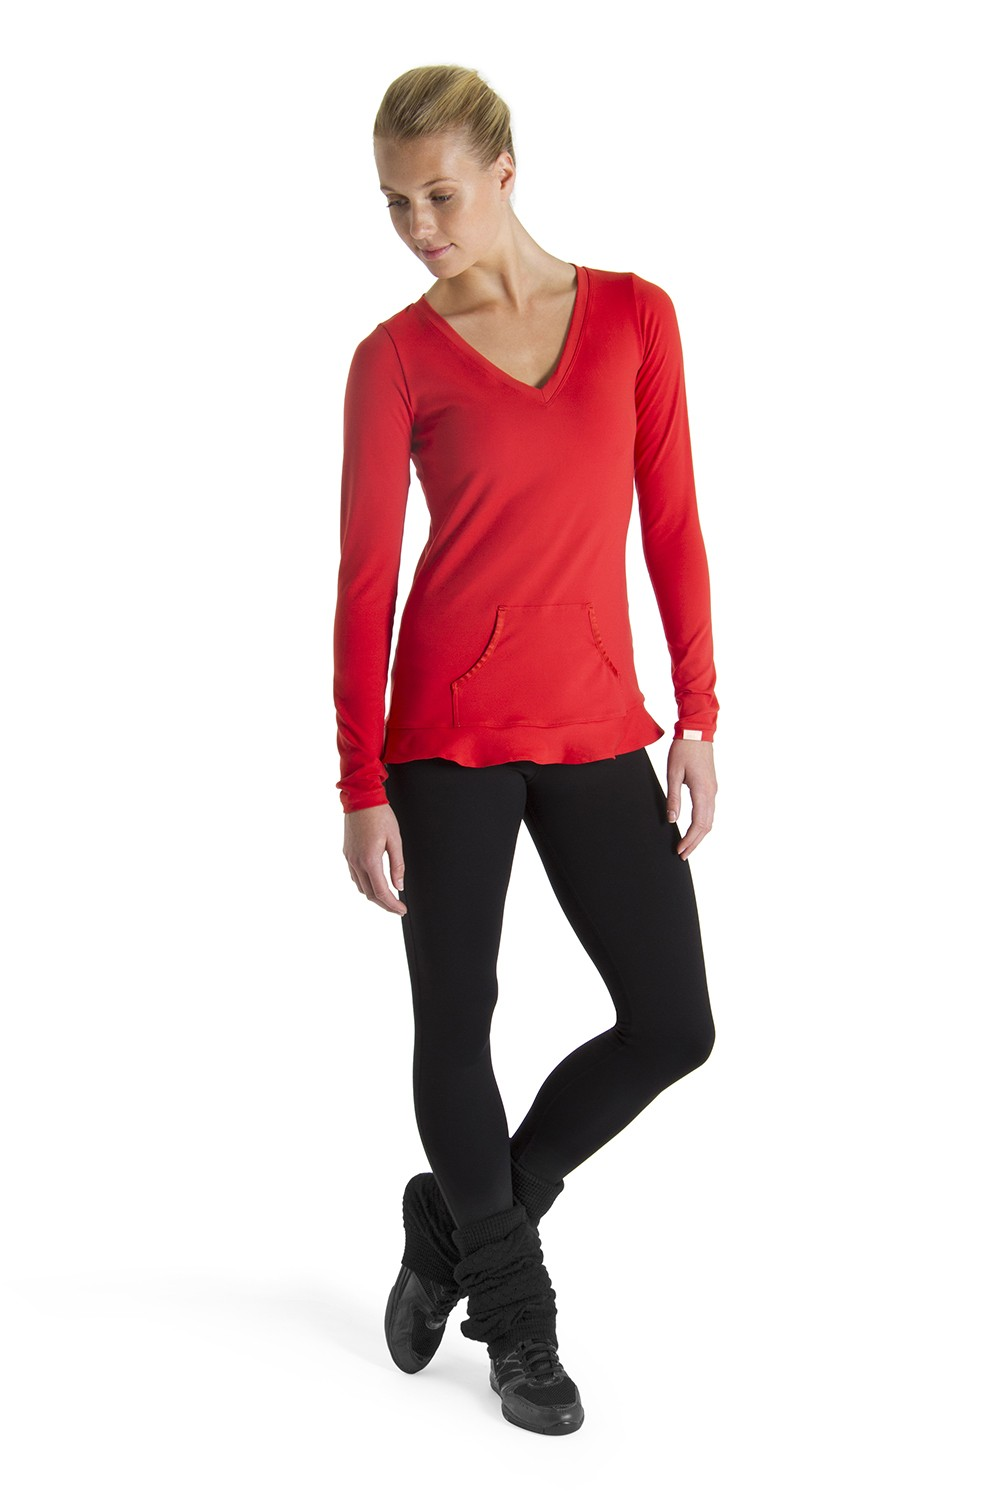 Queen Long Sleeve Top Women's Tops